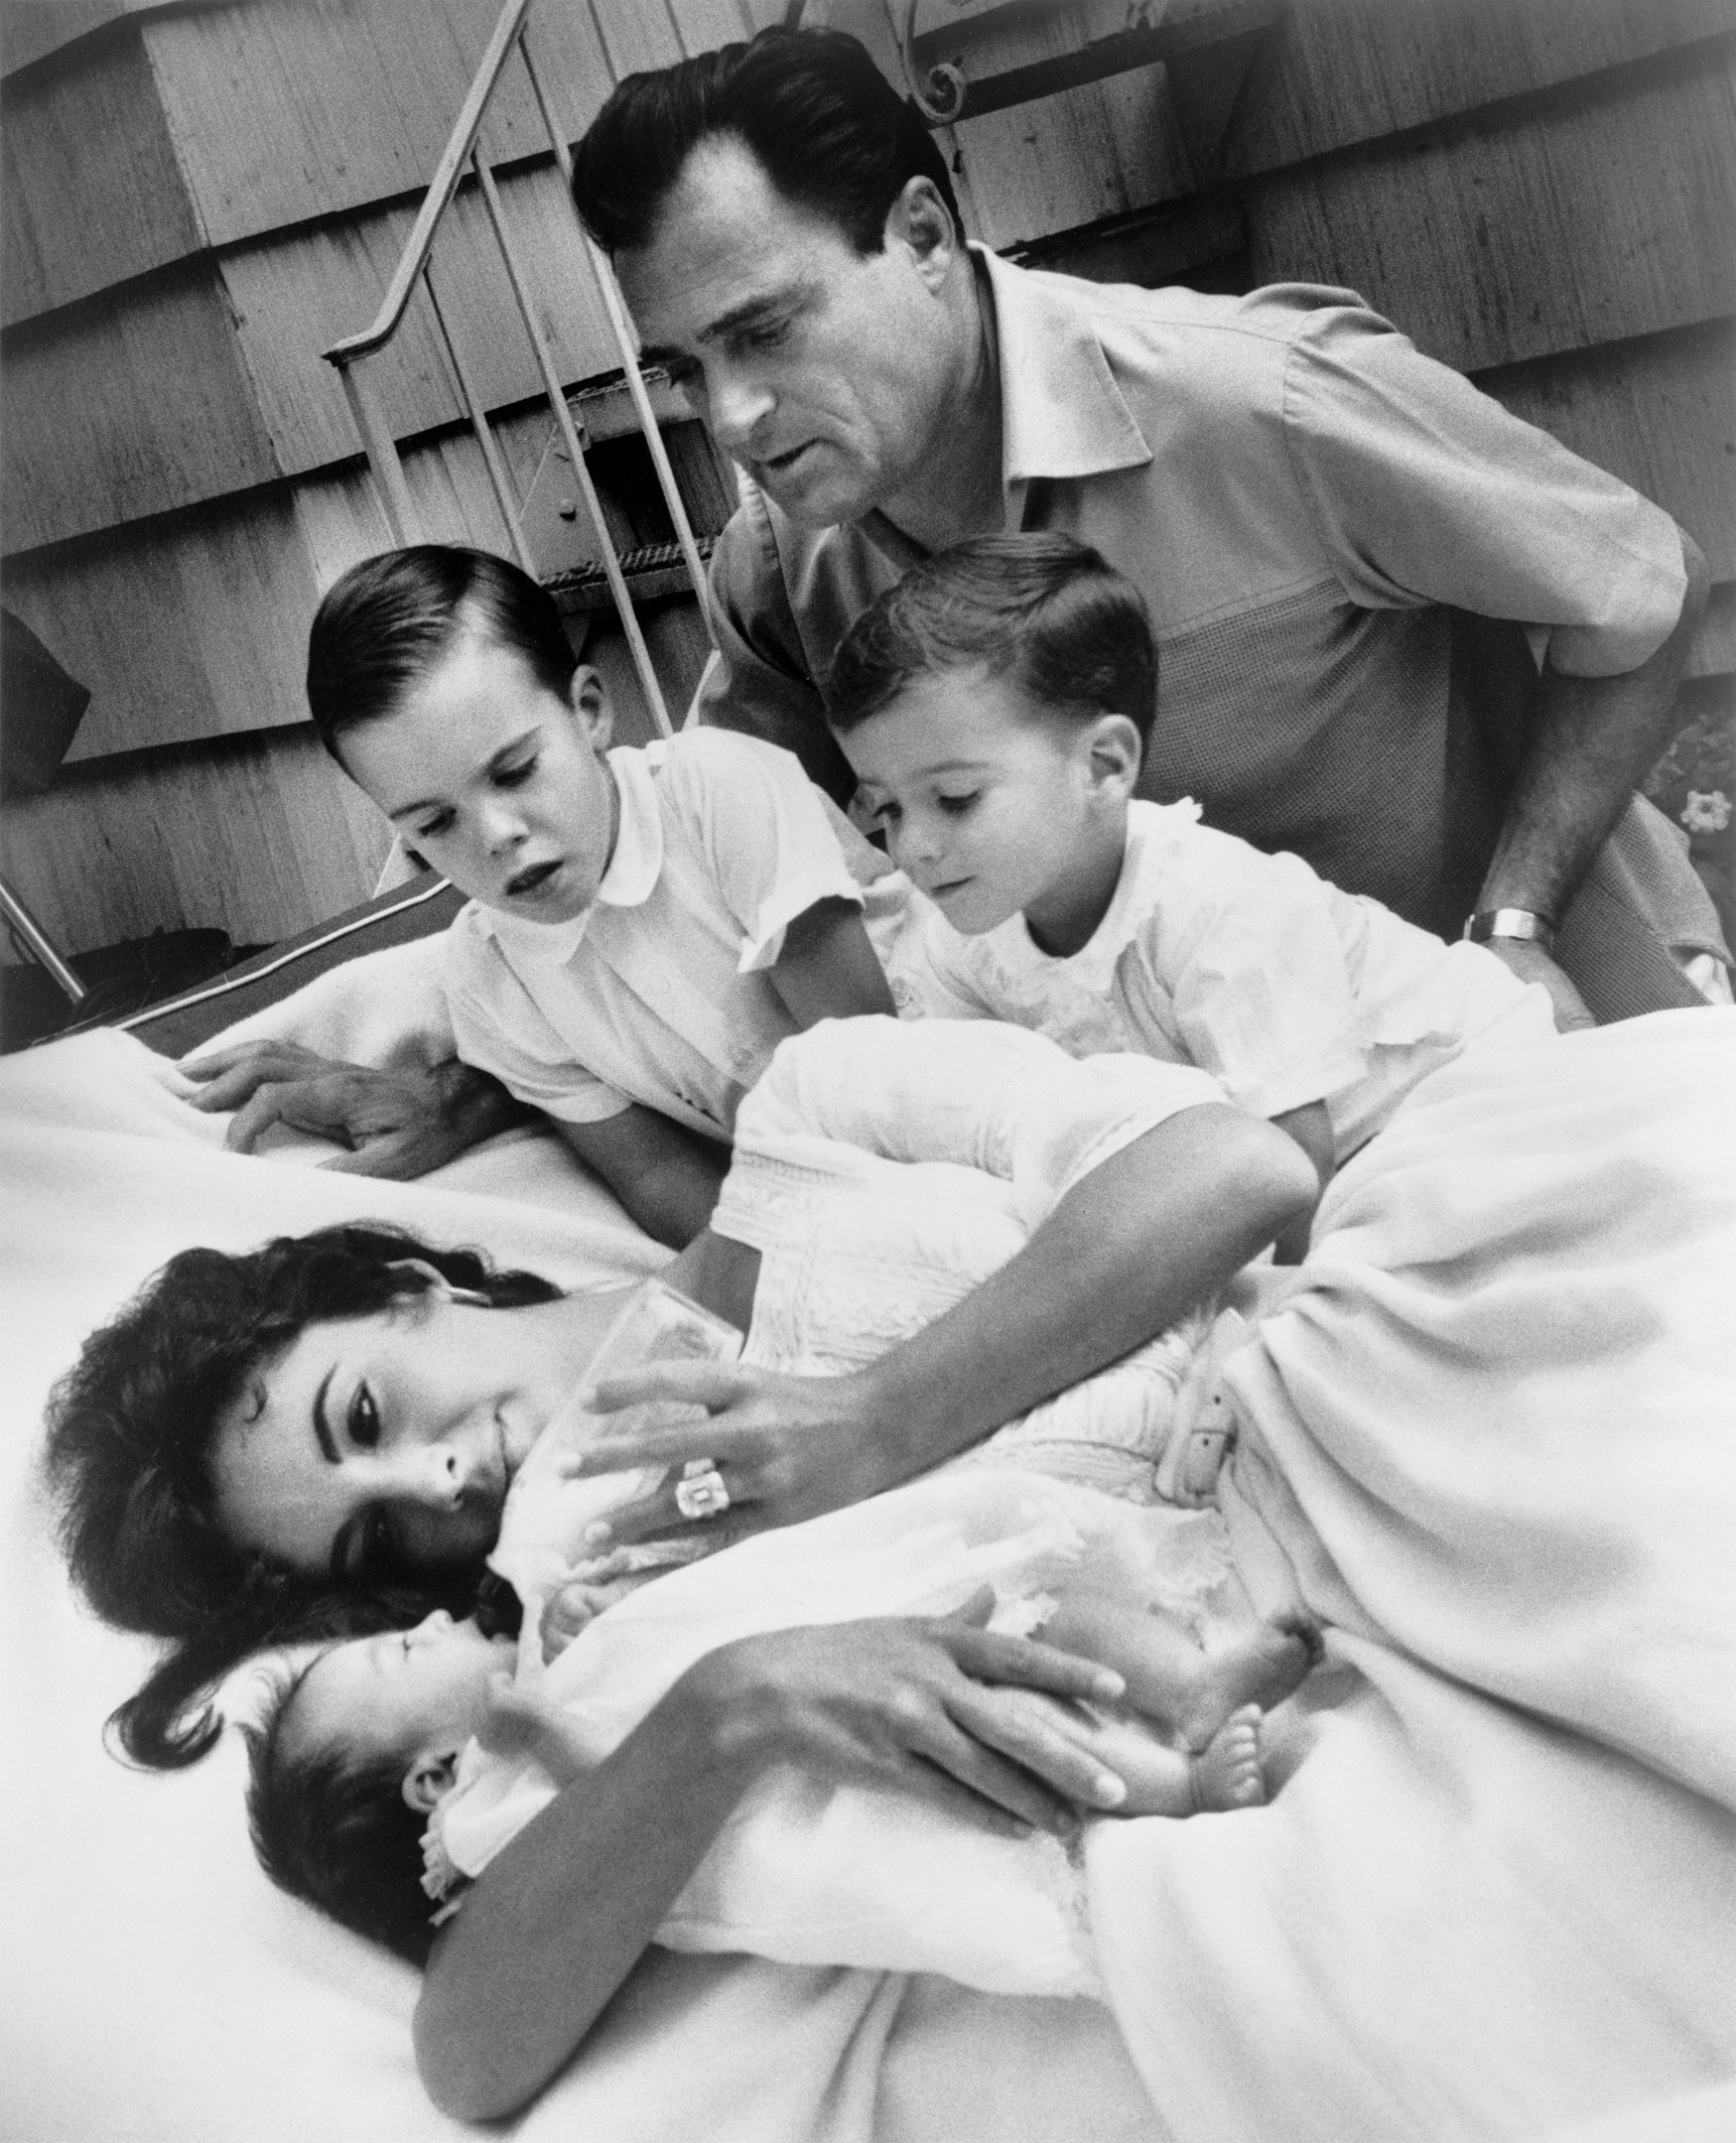 Elizabeth Taylor bottle-feeding newborn Liza Todd with her sons Christopher and Michael H. Wilding, and her husband Michael Todd observing, 1957| Photograph by Toni Frissell. Wikimedia Commons Images